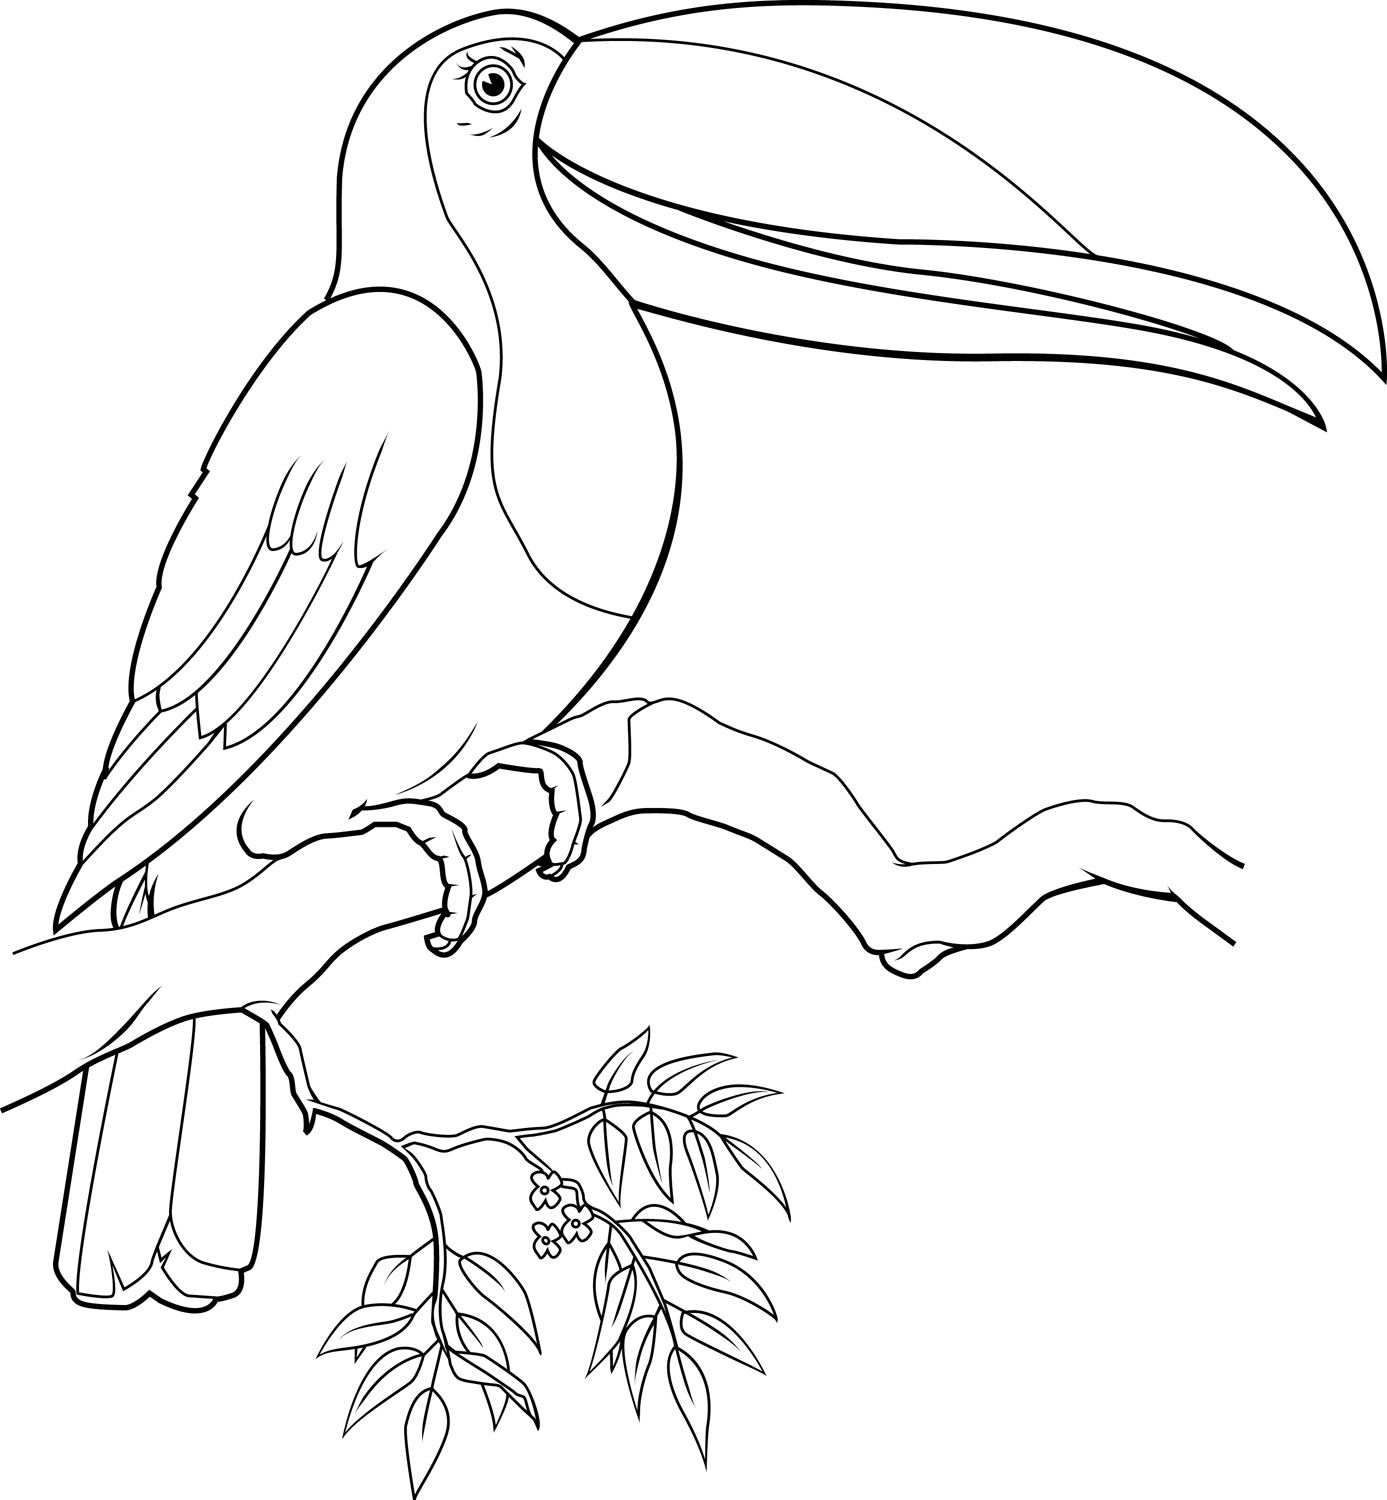 1387x1500 Toucan Coloring Page Free Of Toucans Coloring Pages For Toucan